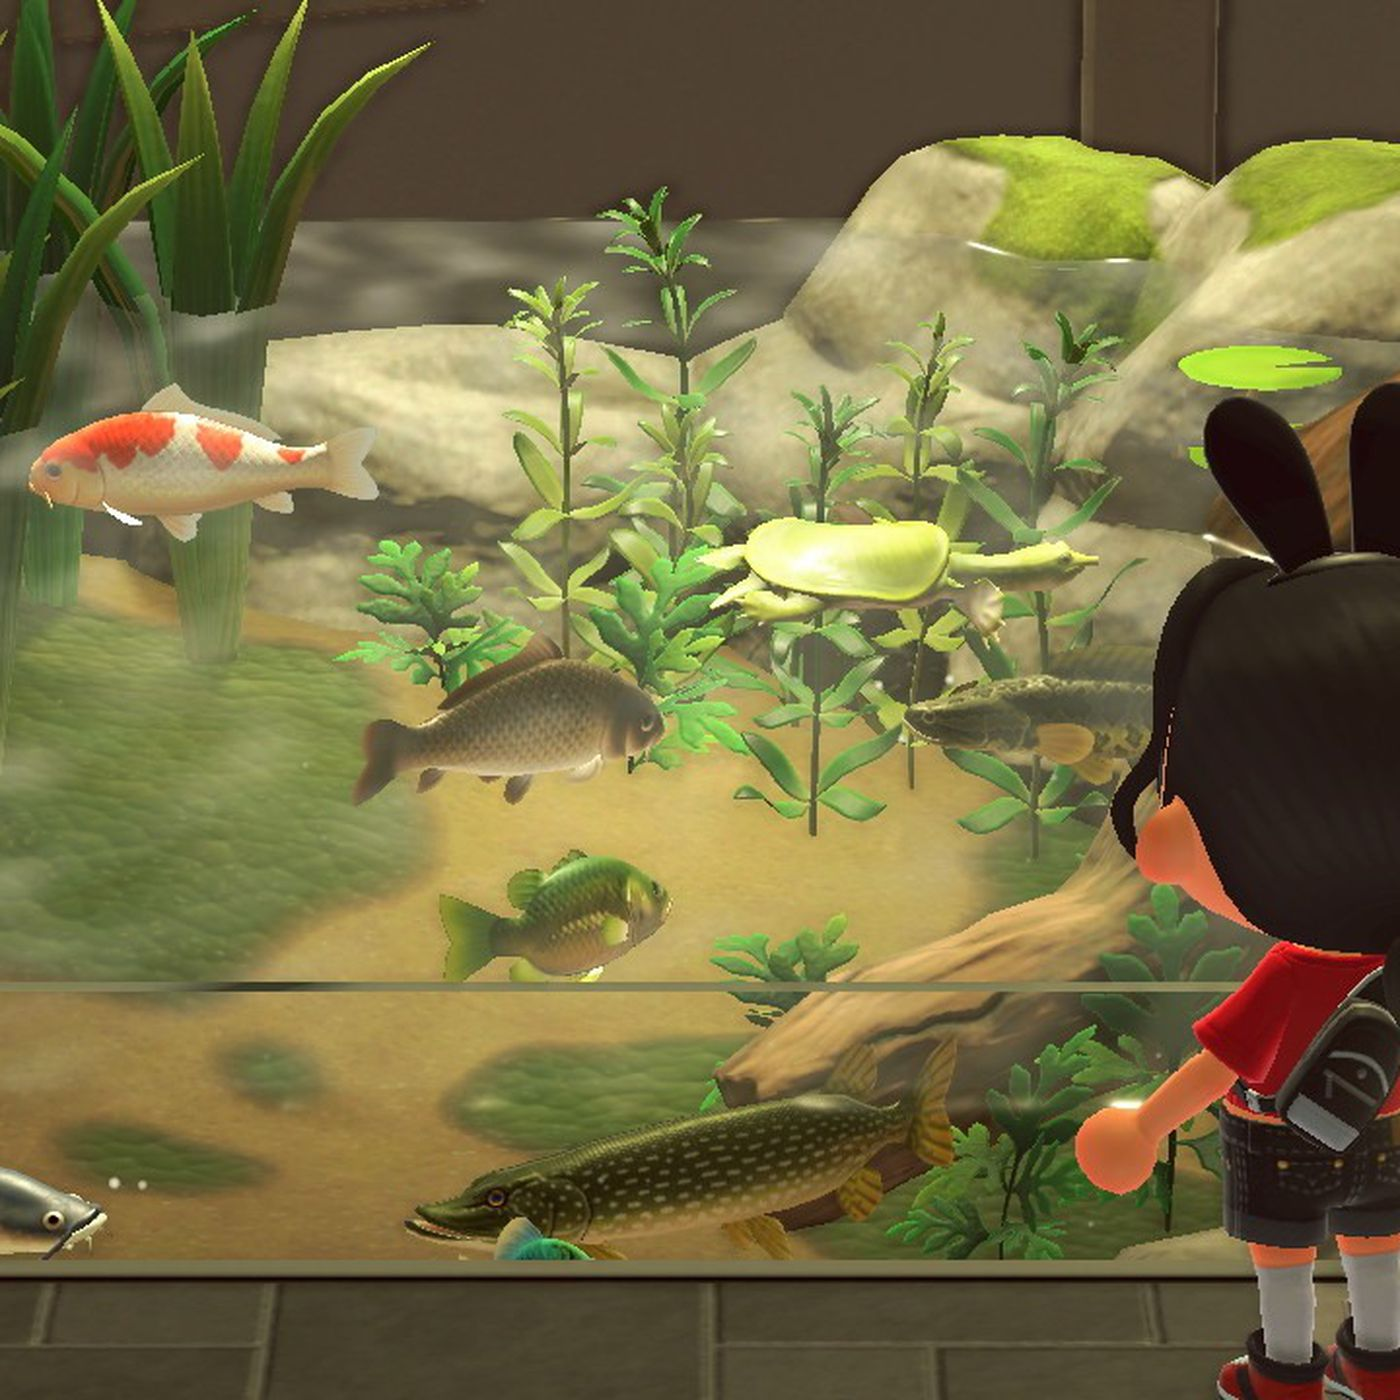 Animal Crossing New Horizons Turtles Are Now Pets